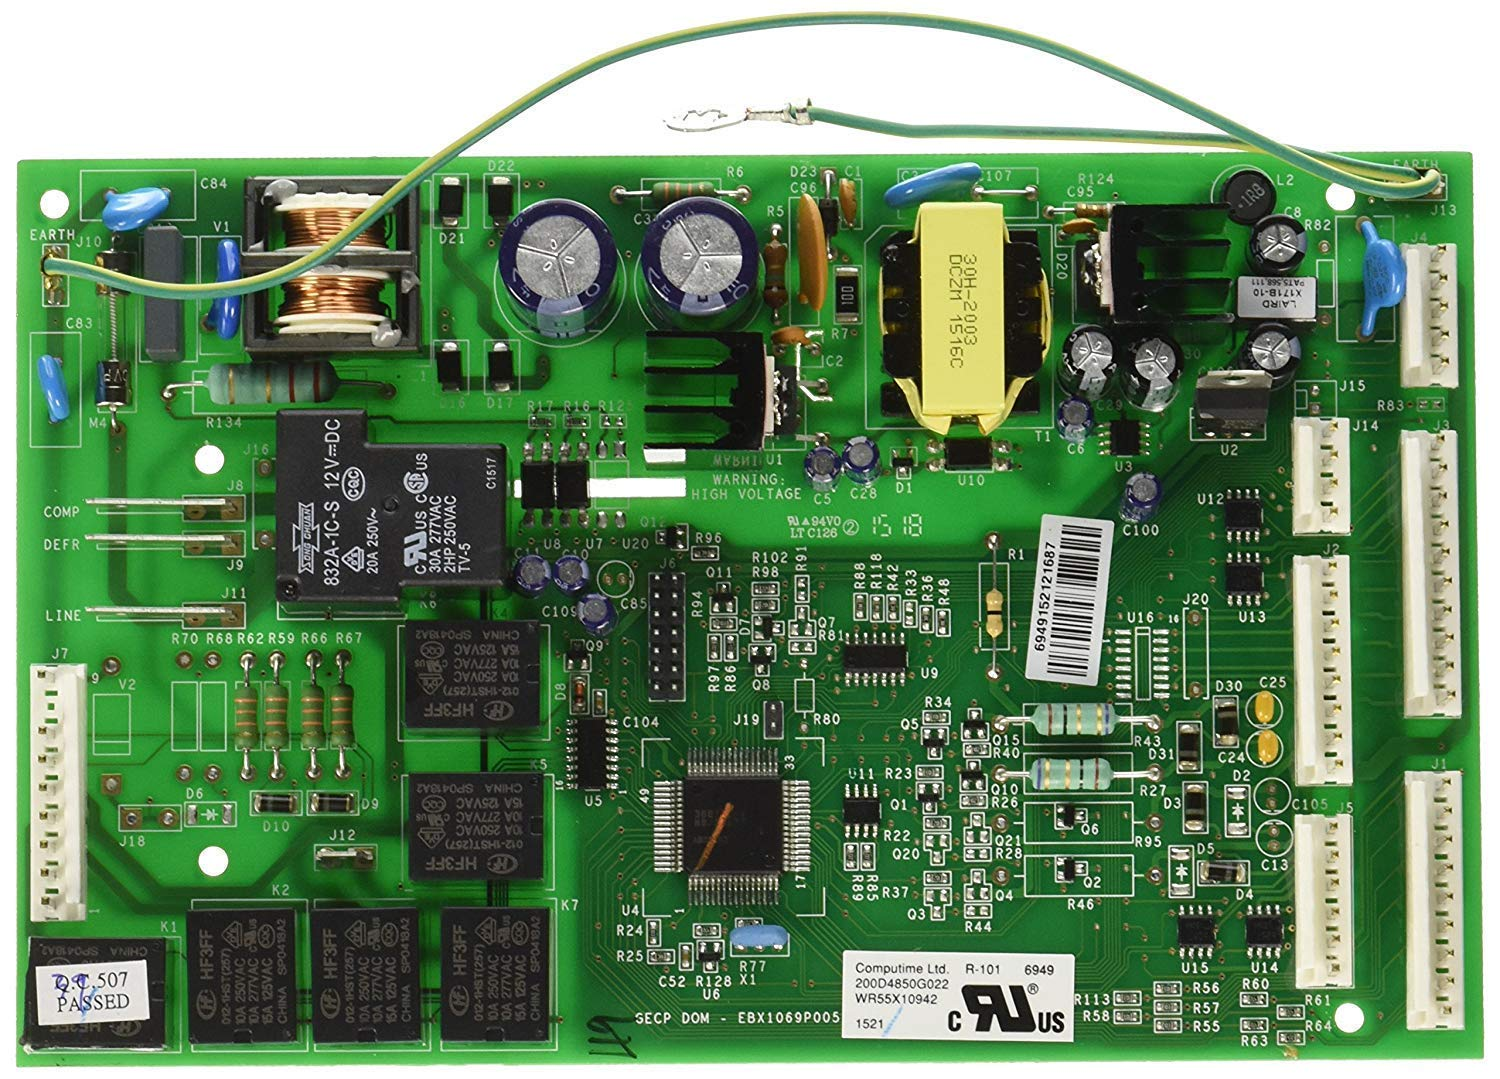 Global Products Refrigerator Main Control Board Compatible with GE PS12069099